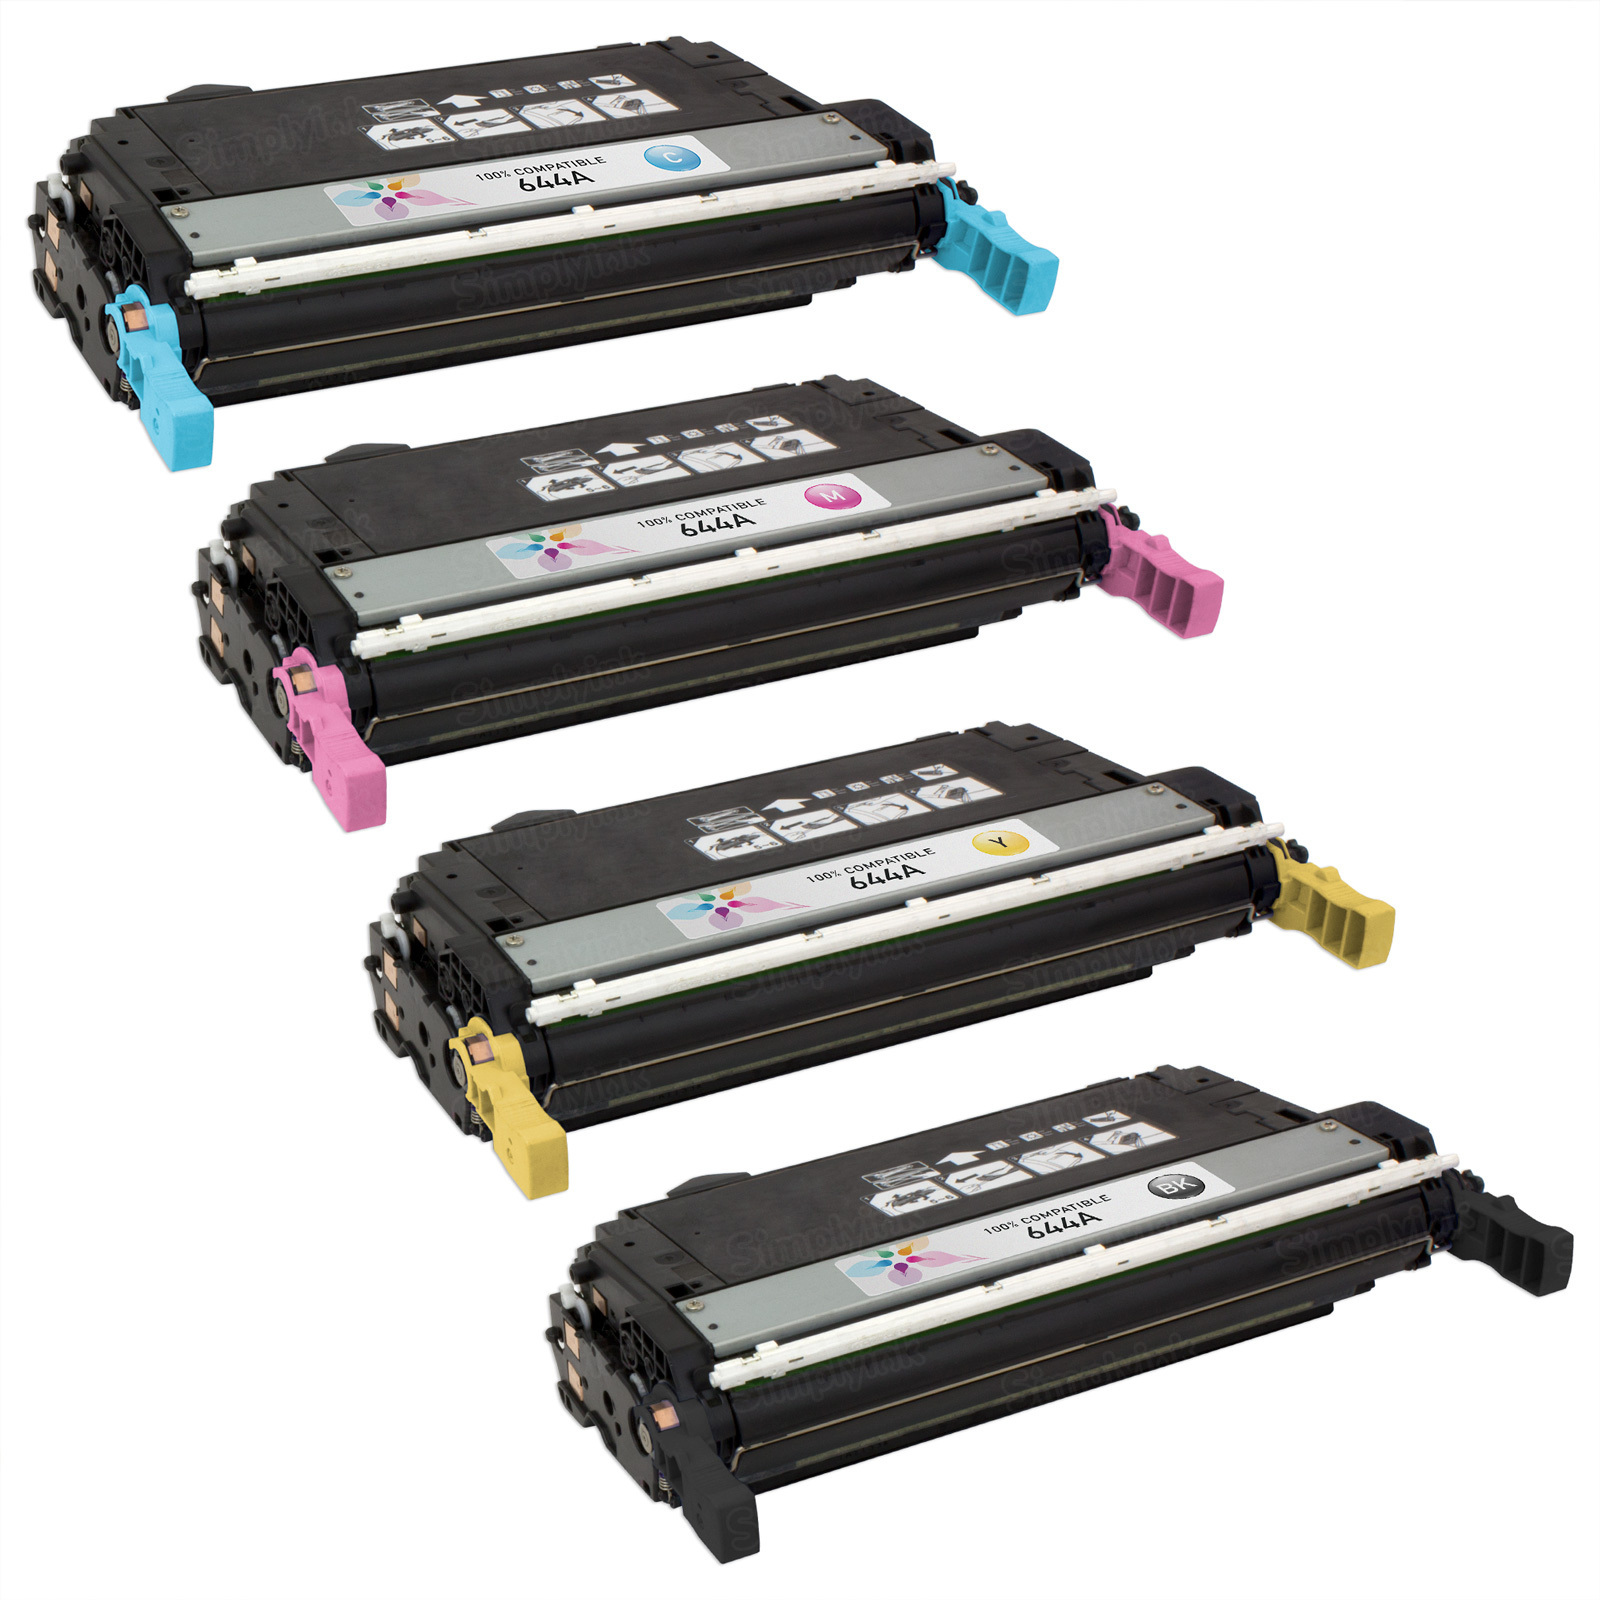 Remanufactured Replacement for HP 644A (Bk, C, M, Y) Set of 4 Toners